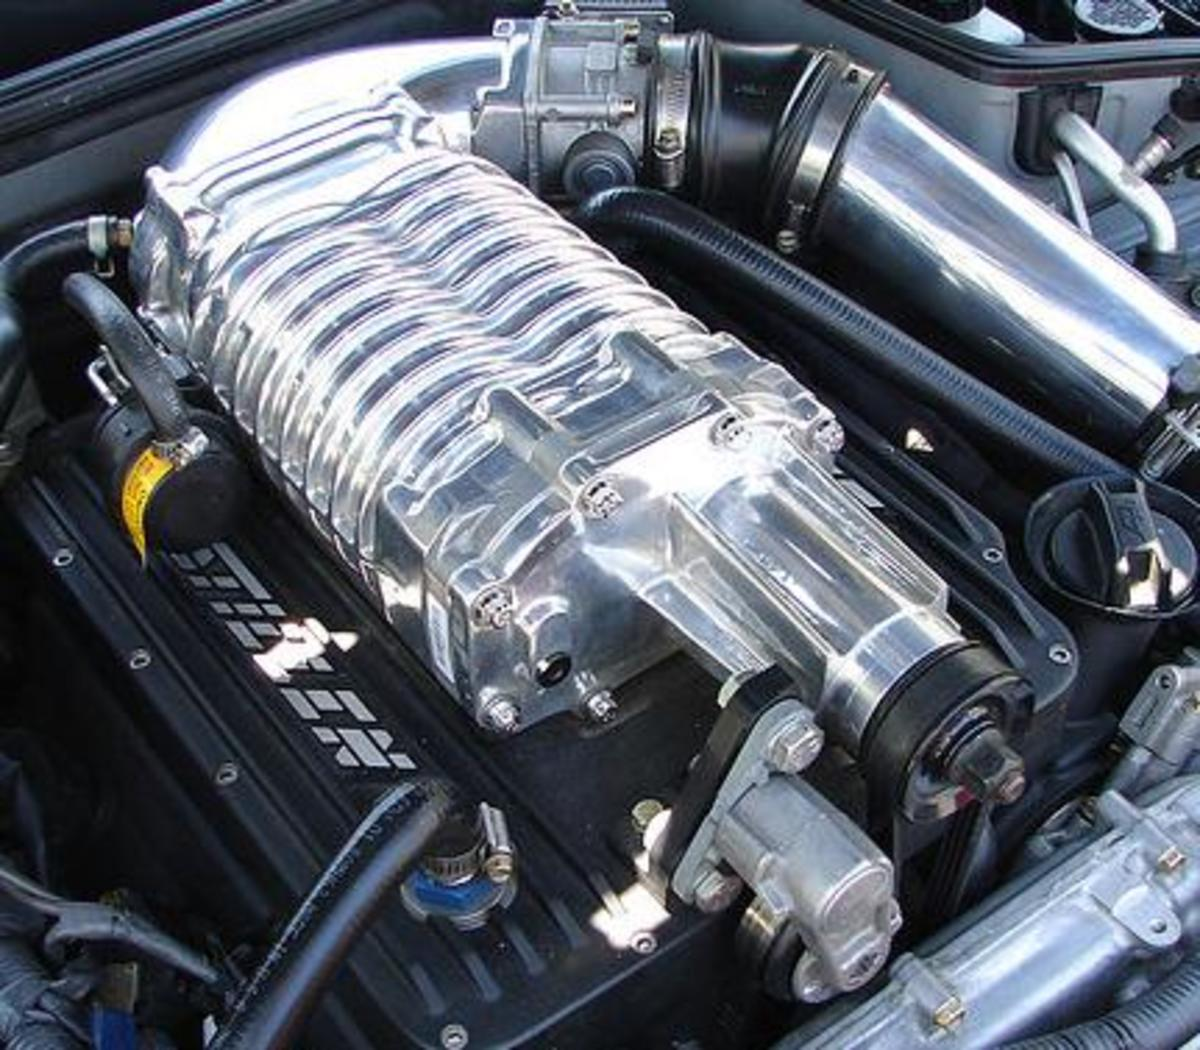 Car Modding, Car Tuning and the Science of Horsepower: The